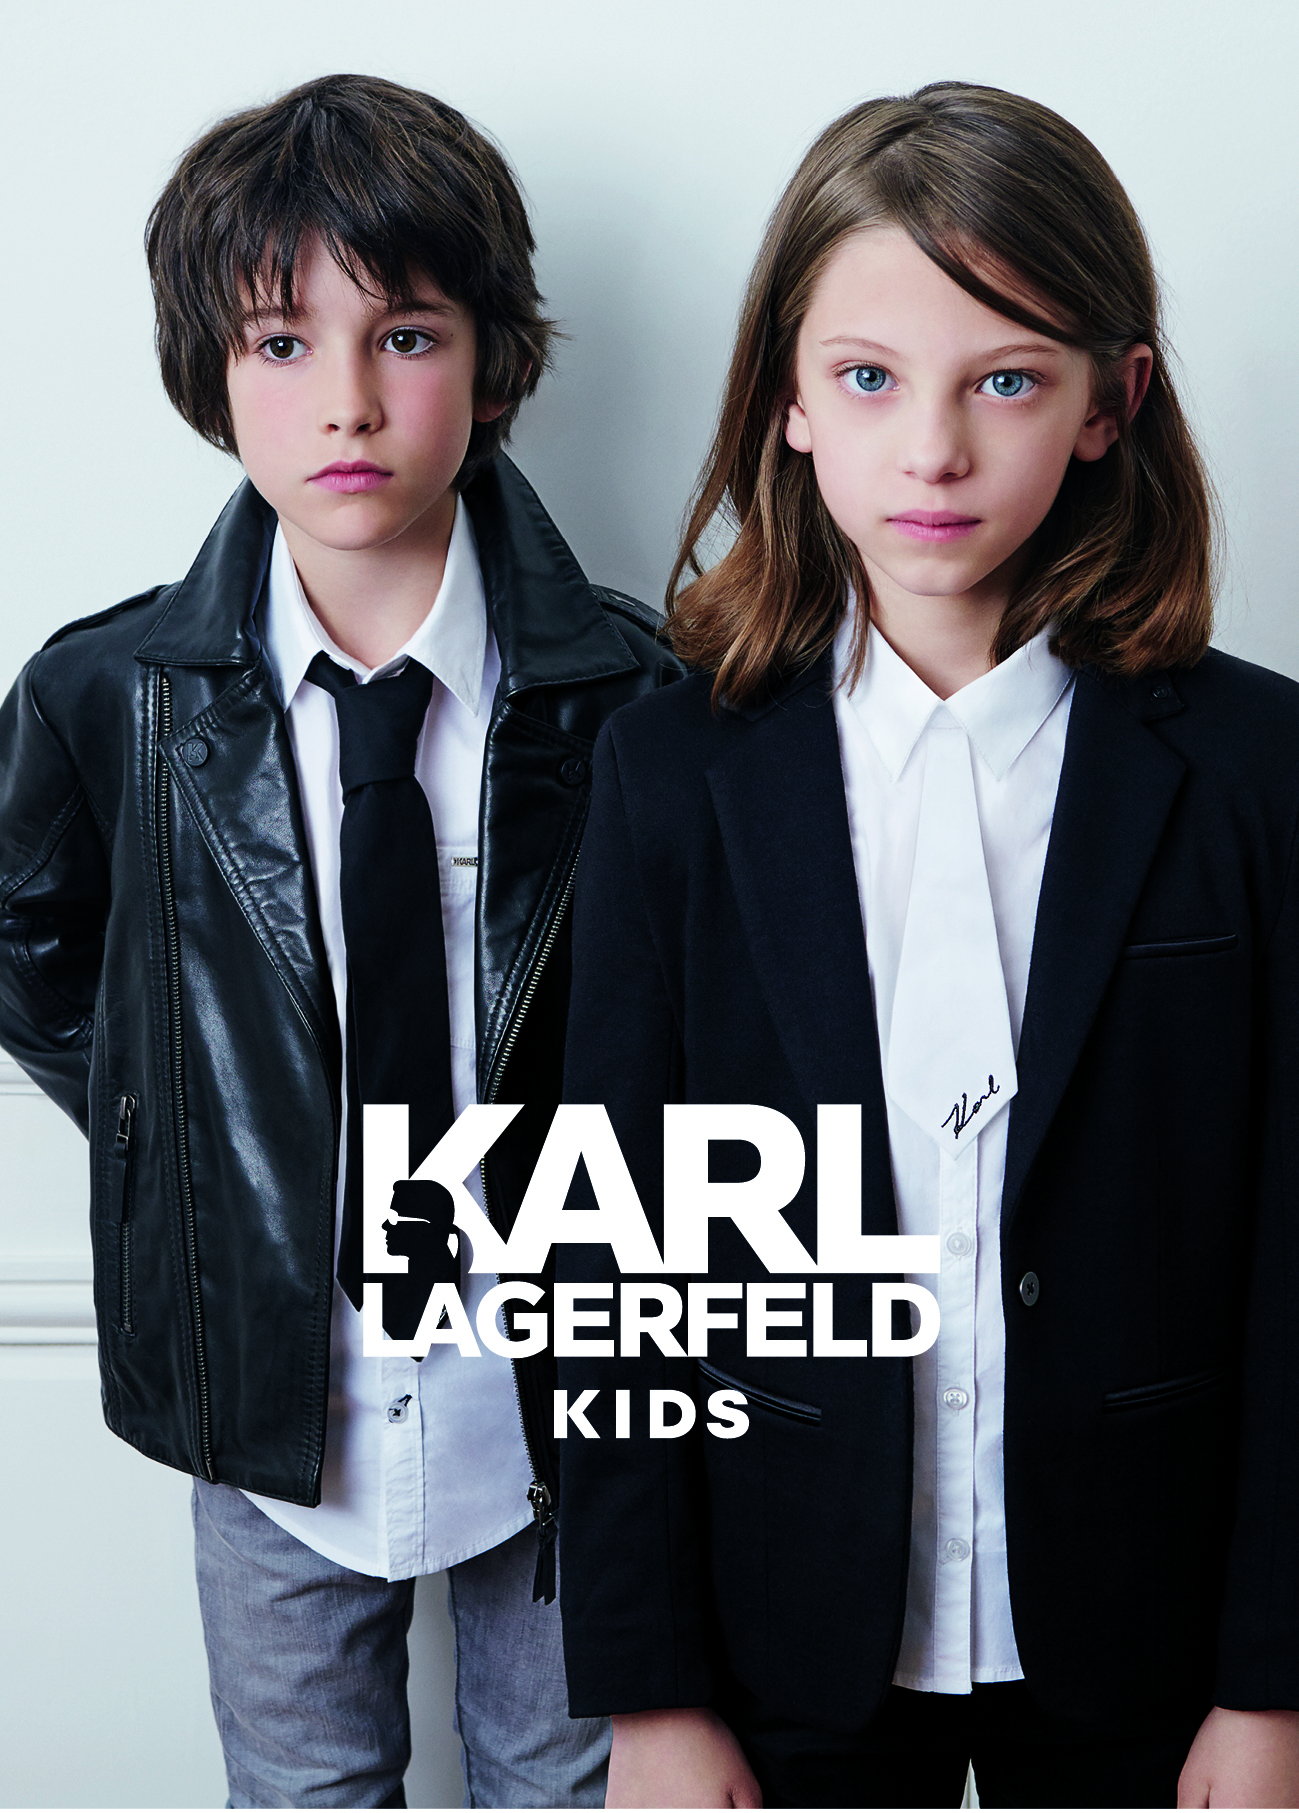 KARL LAGERFELD KIDS FOR THE NEXT GENERATION